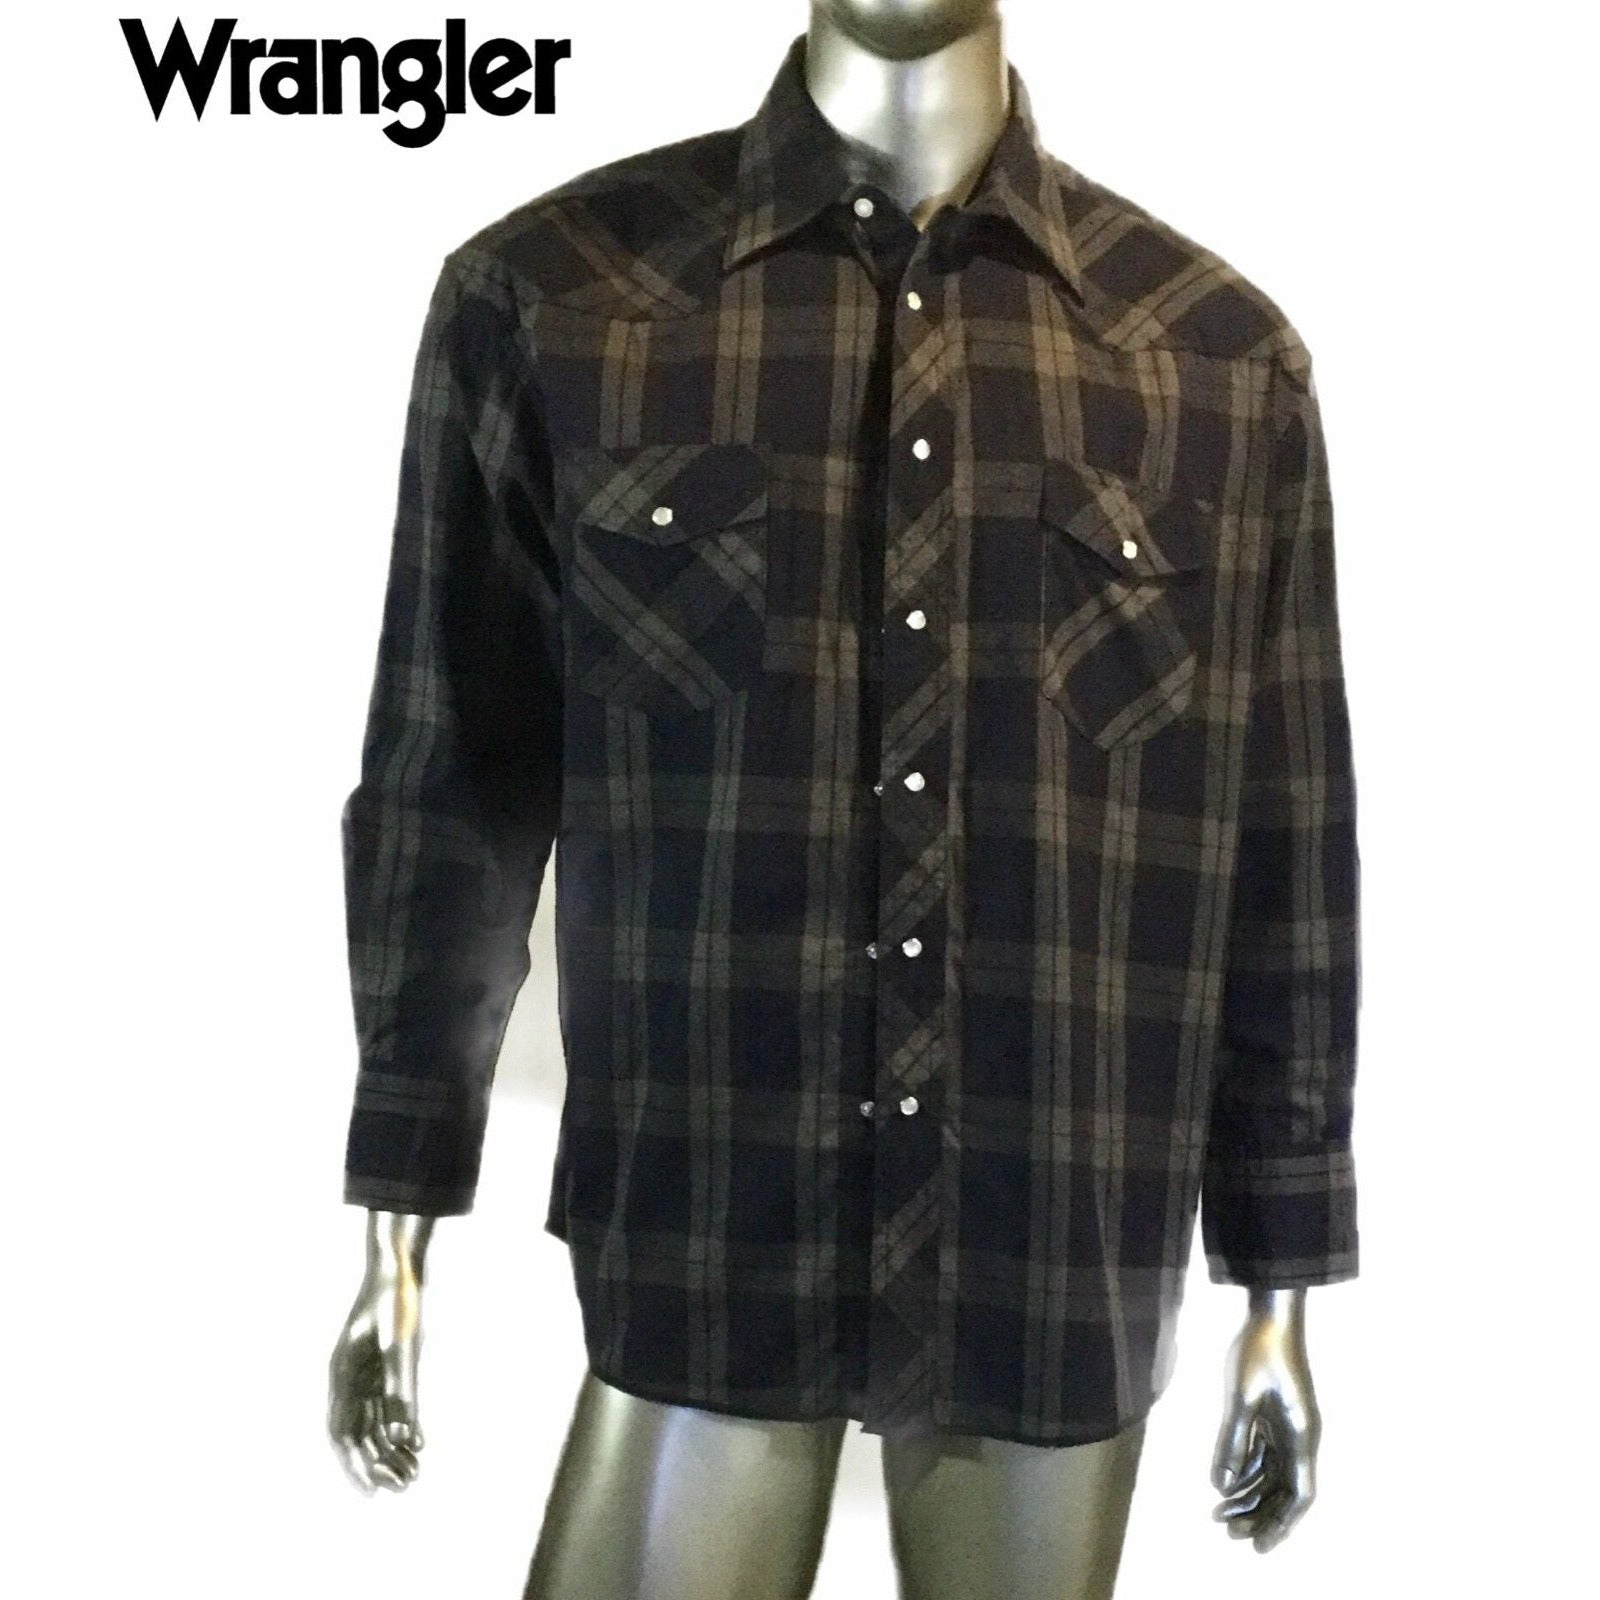 Vintage Men's Wrangler Pearl Button Plaid Western Shirt Size 17.5x34